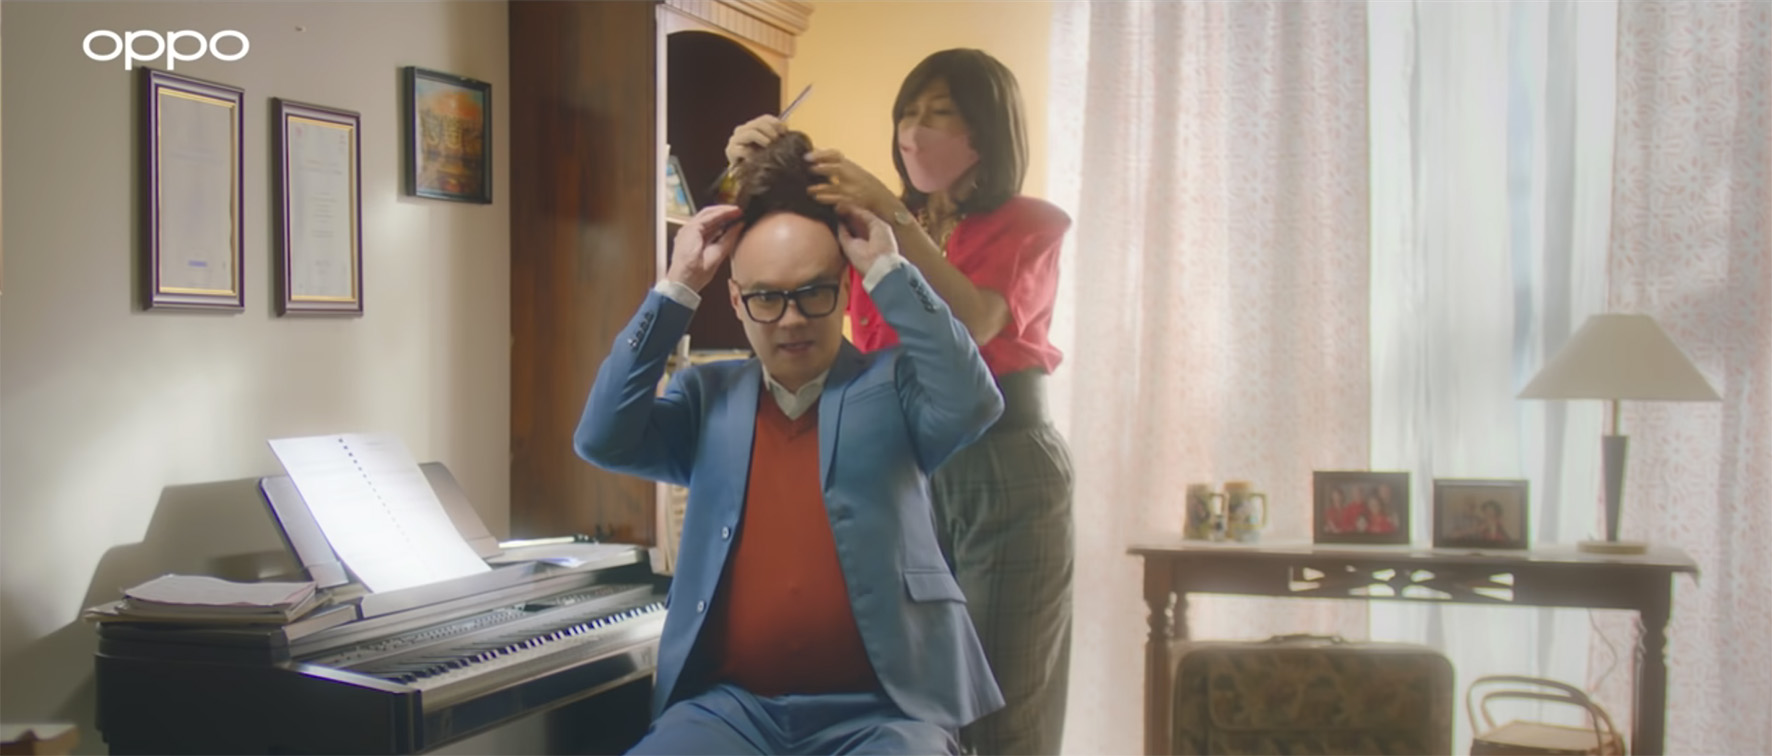 Ensemble Worldwide releases Malaysia day OPPO film reminding Malaysians to stick together